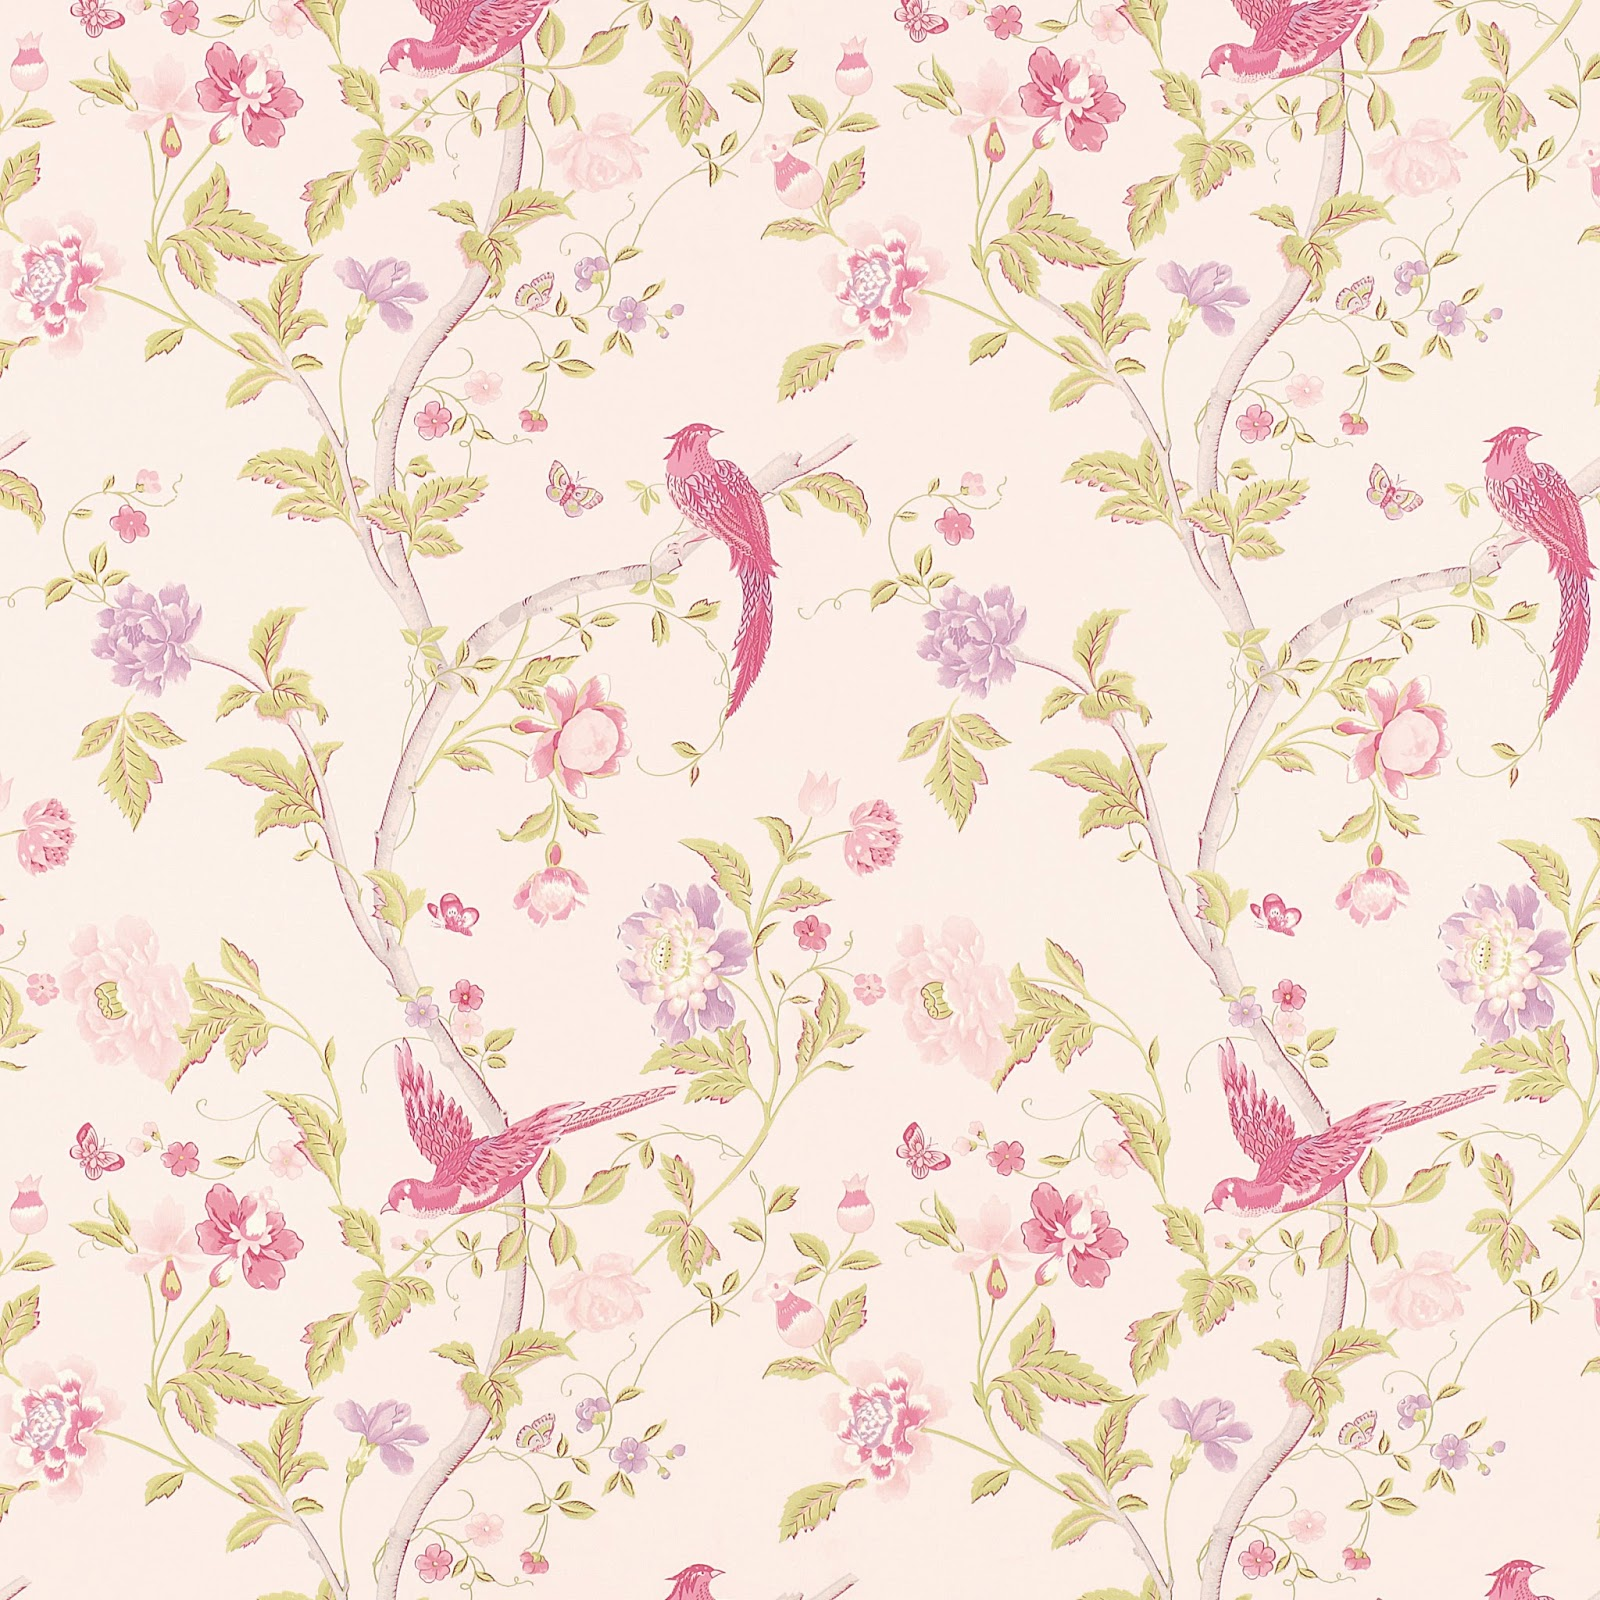 Vintage Floral Print High Quality Wallpaper 1600 X